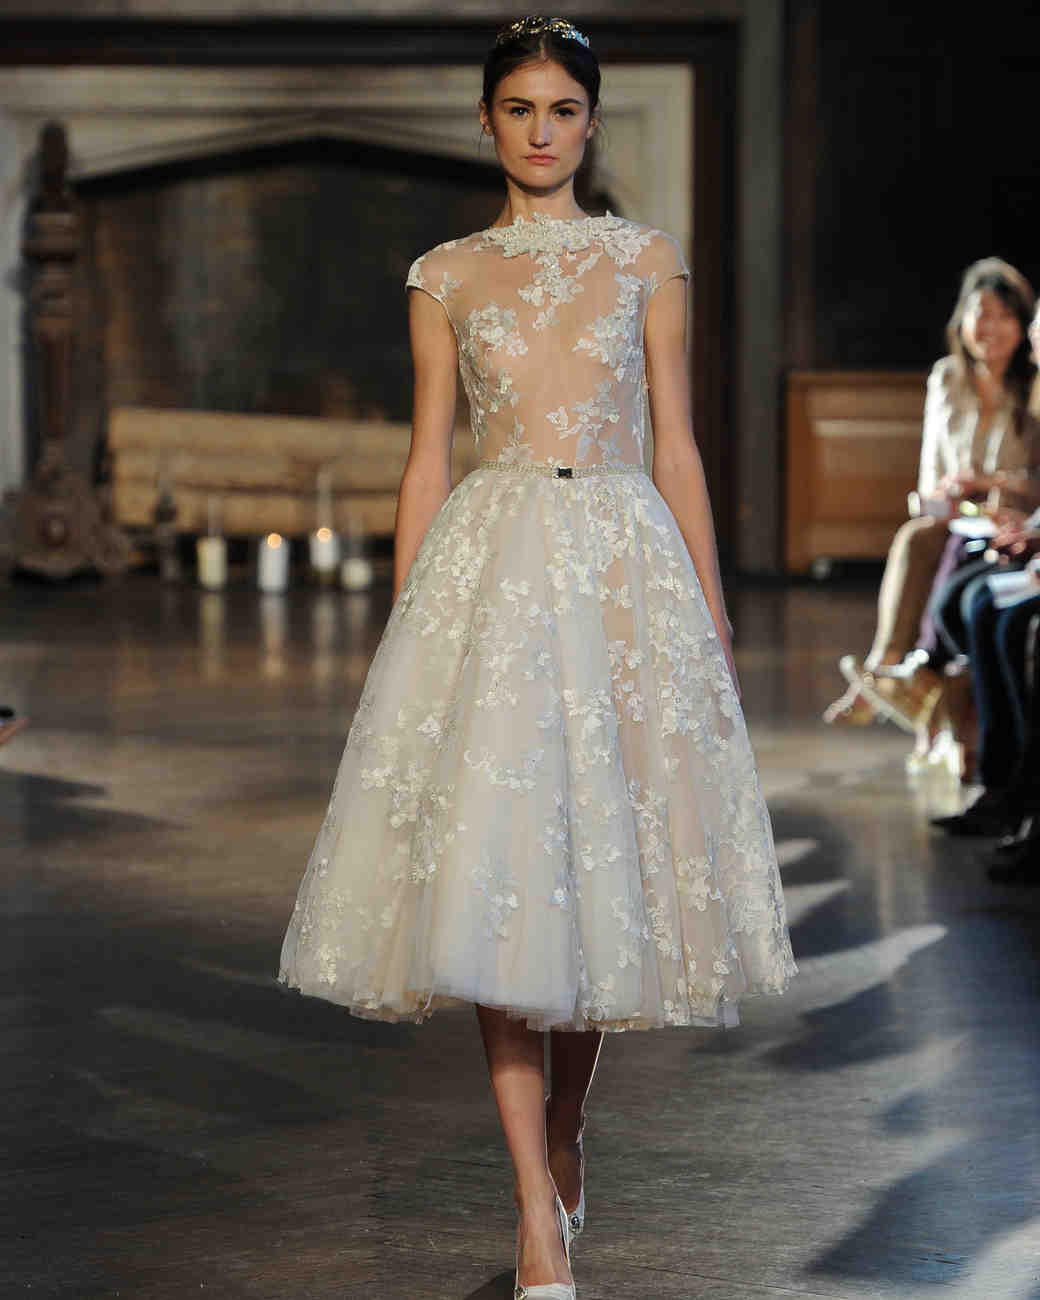 inbal-dror-alt-fall2015-wd111654-025.jpg